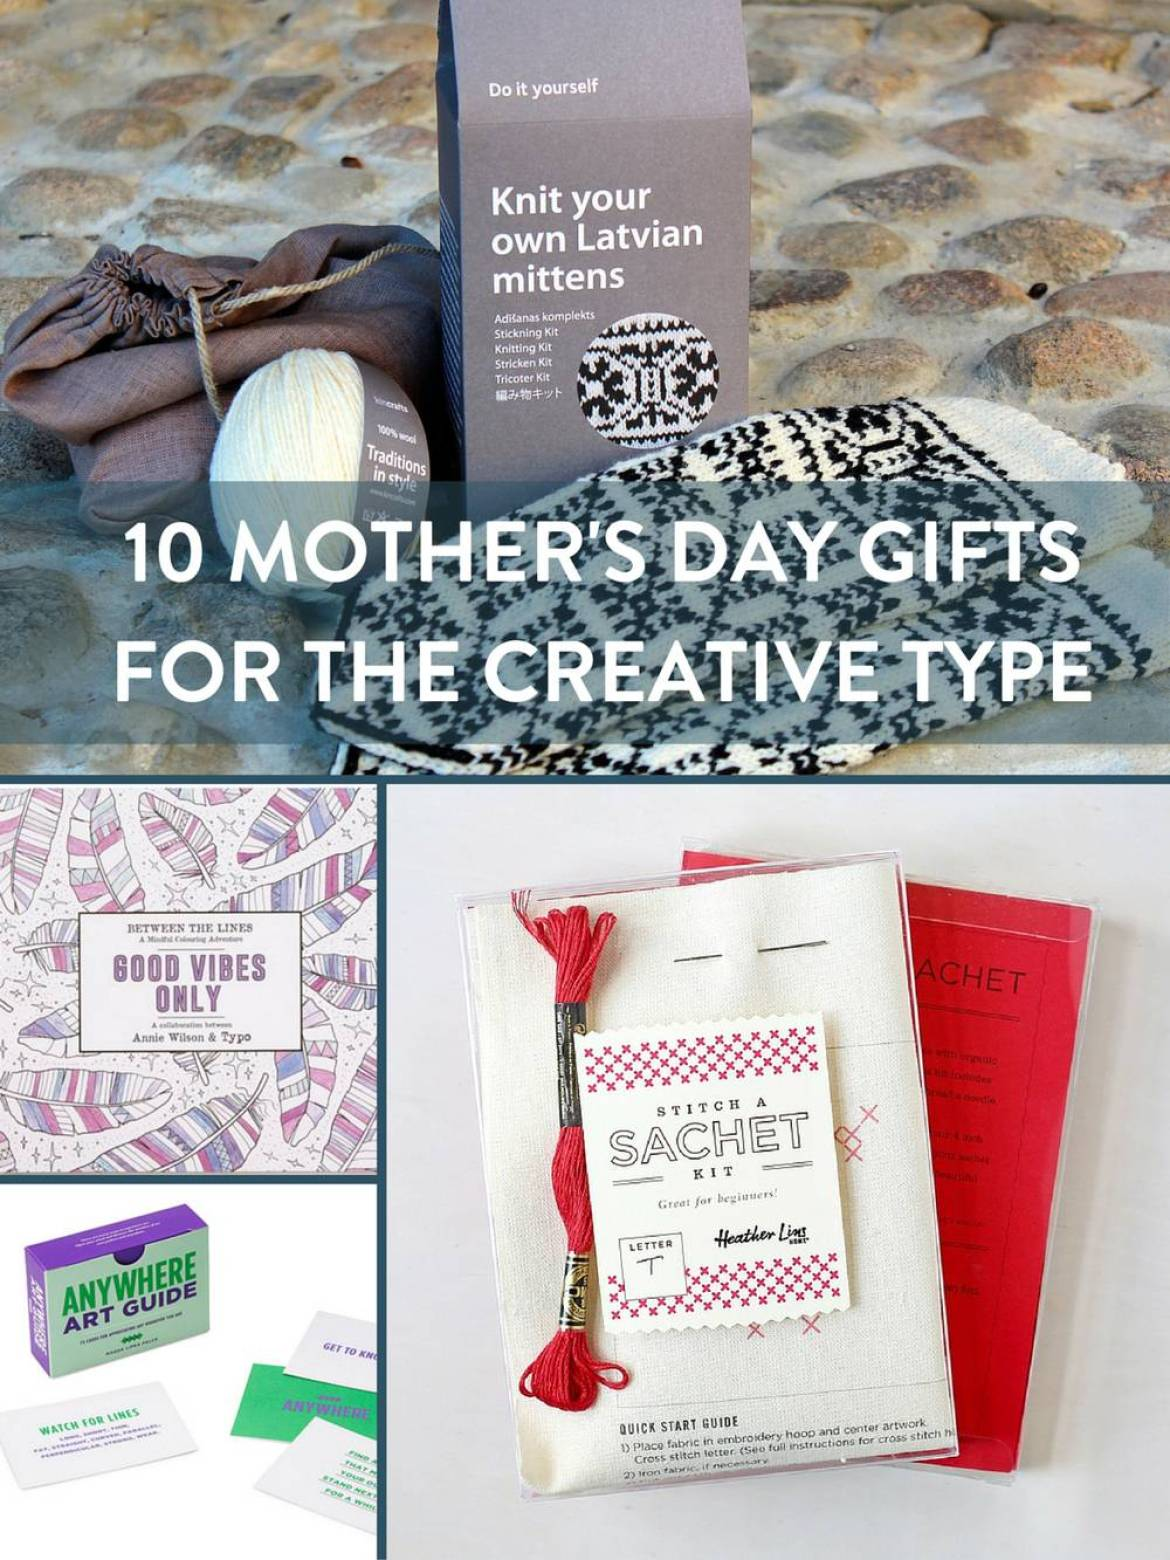 Shopping Guide: 10 Mother's Day Gifts For The Creative Type